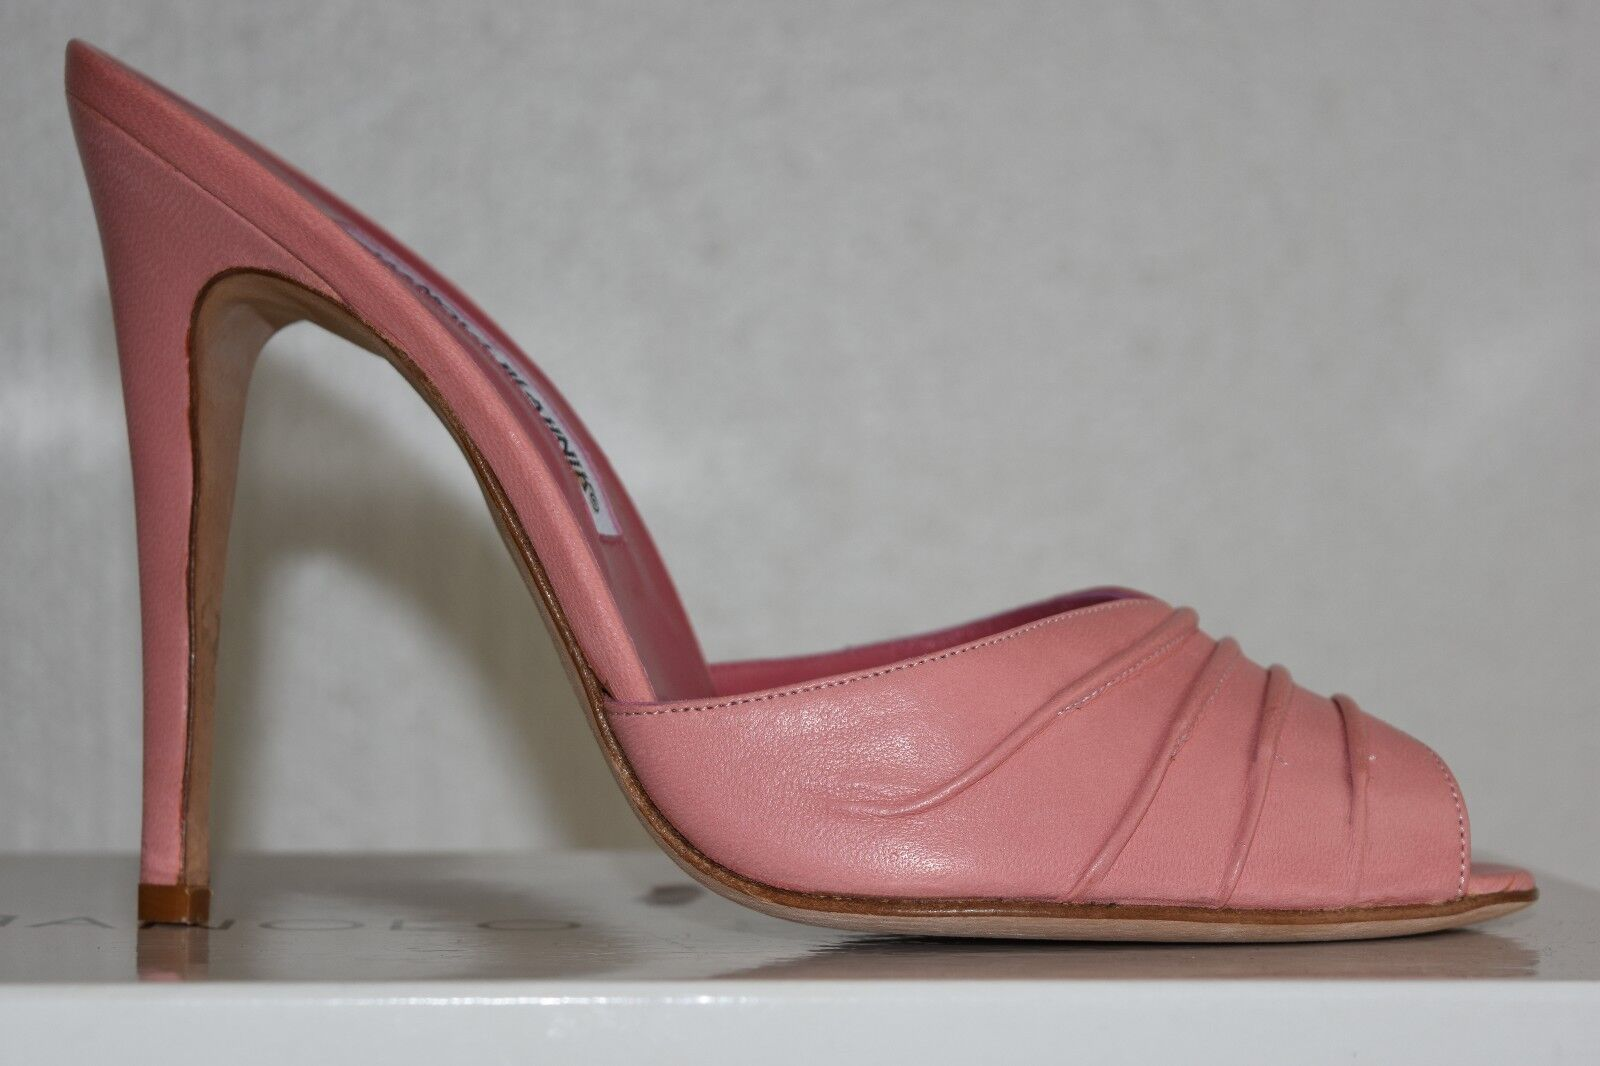 NEW MANOLO BLAHNIK NAGIN NAGIN NAGIN 115 LEATHER Pink Flesh Nude SANDALS SLIDES SHOES 40.5 dc6a8b